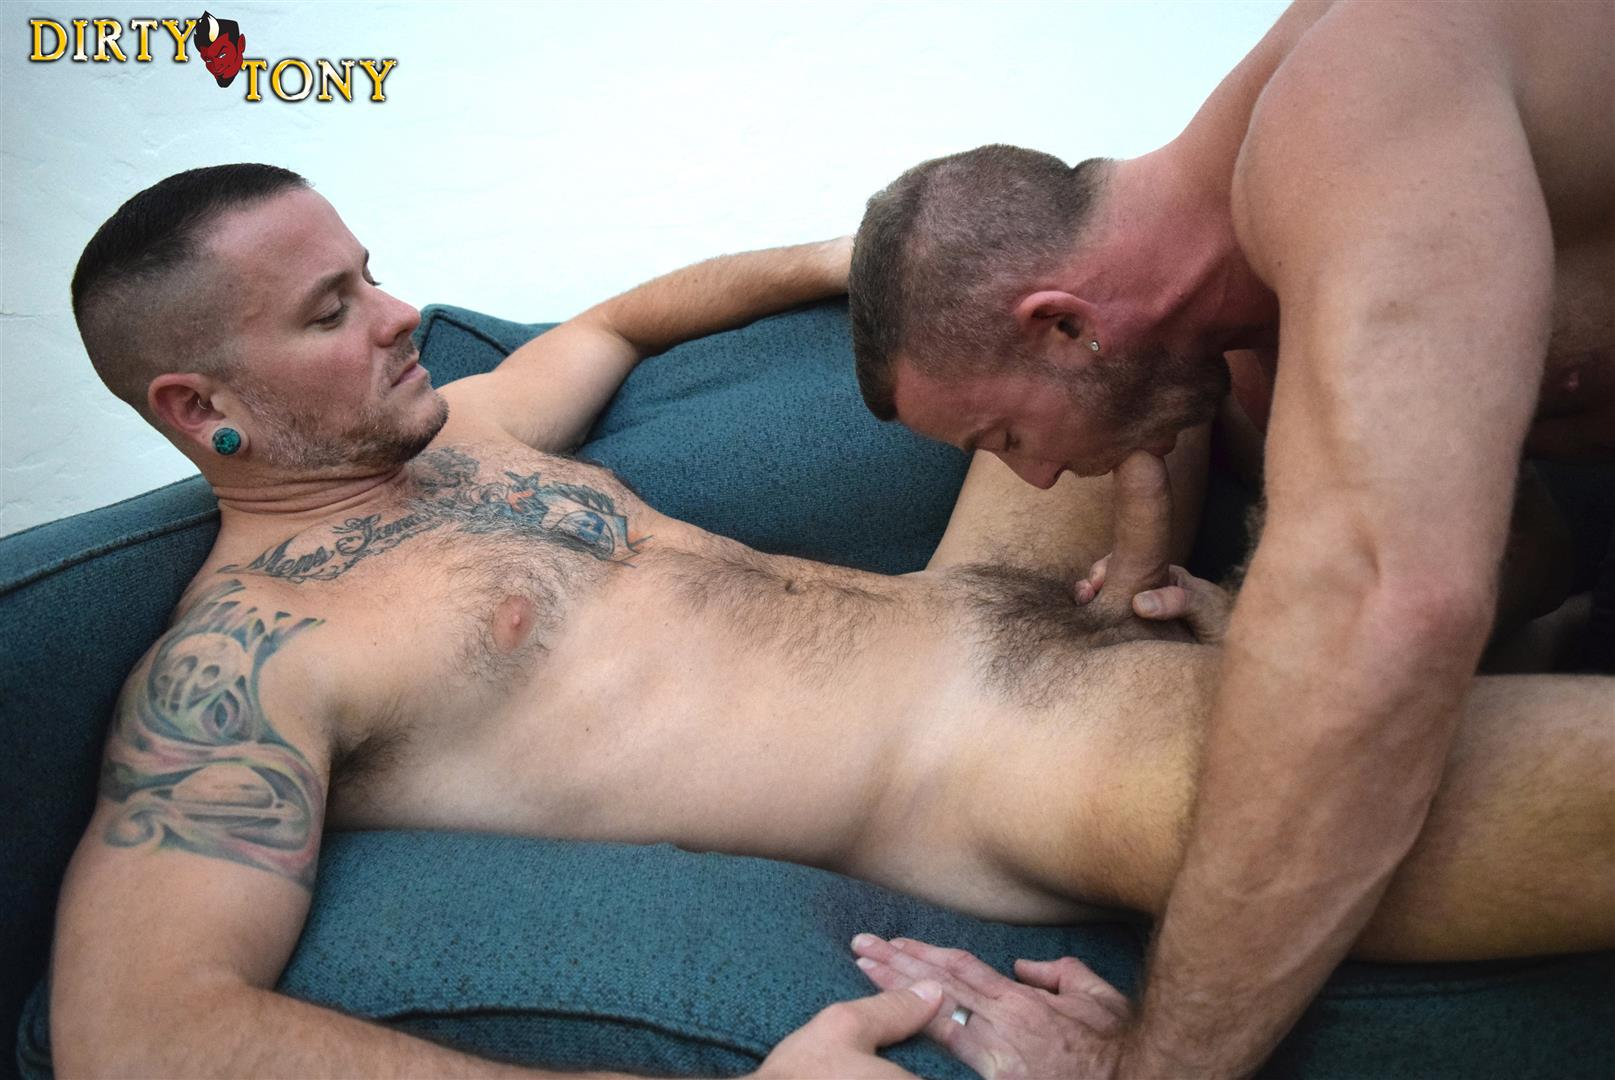 Dirty-Tony-Shay-Michaels-and-Max-Cameron-Hairy-Muscle-Hunk-Bareback-Amateur-Gay-Porn-07 Hairy Muscle Hunk Shay Michaels Barebacking Max Cameron